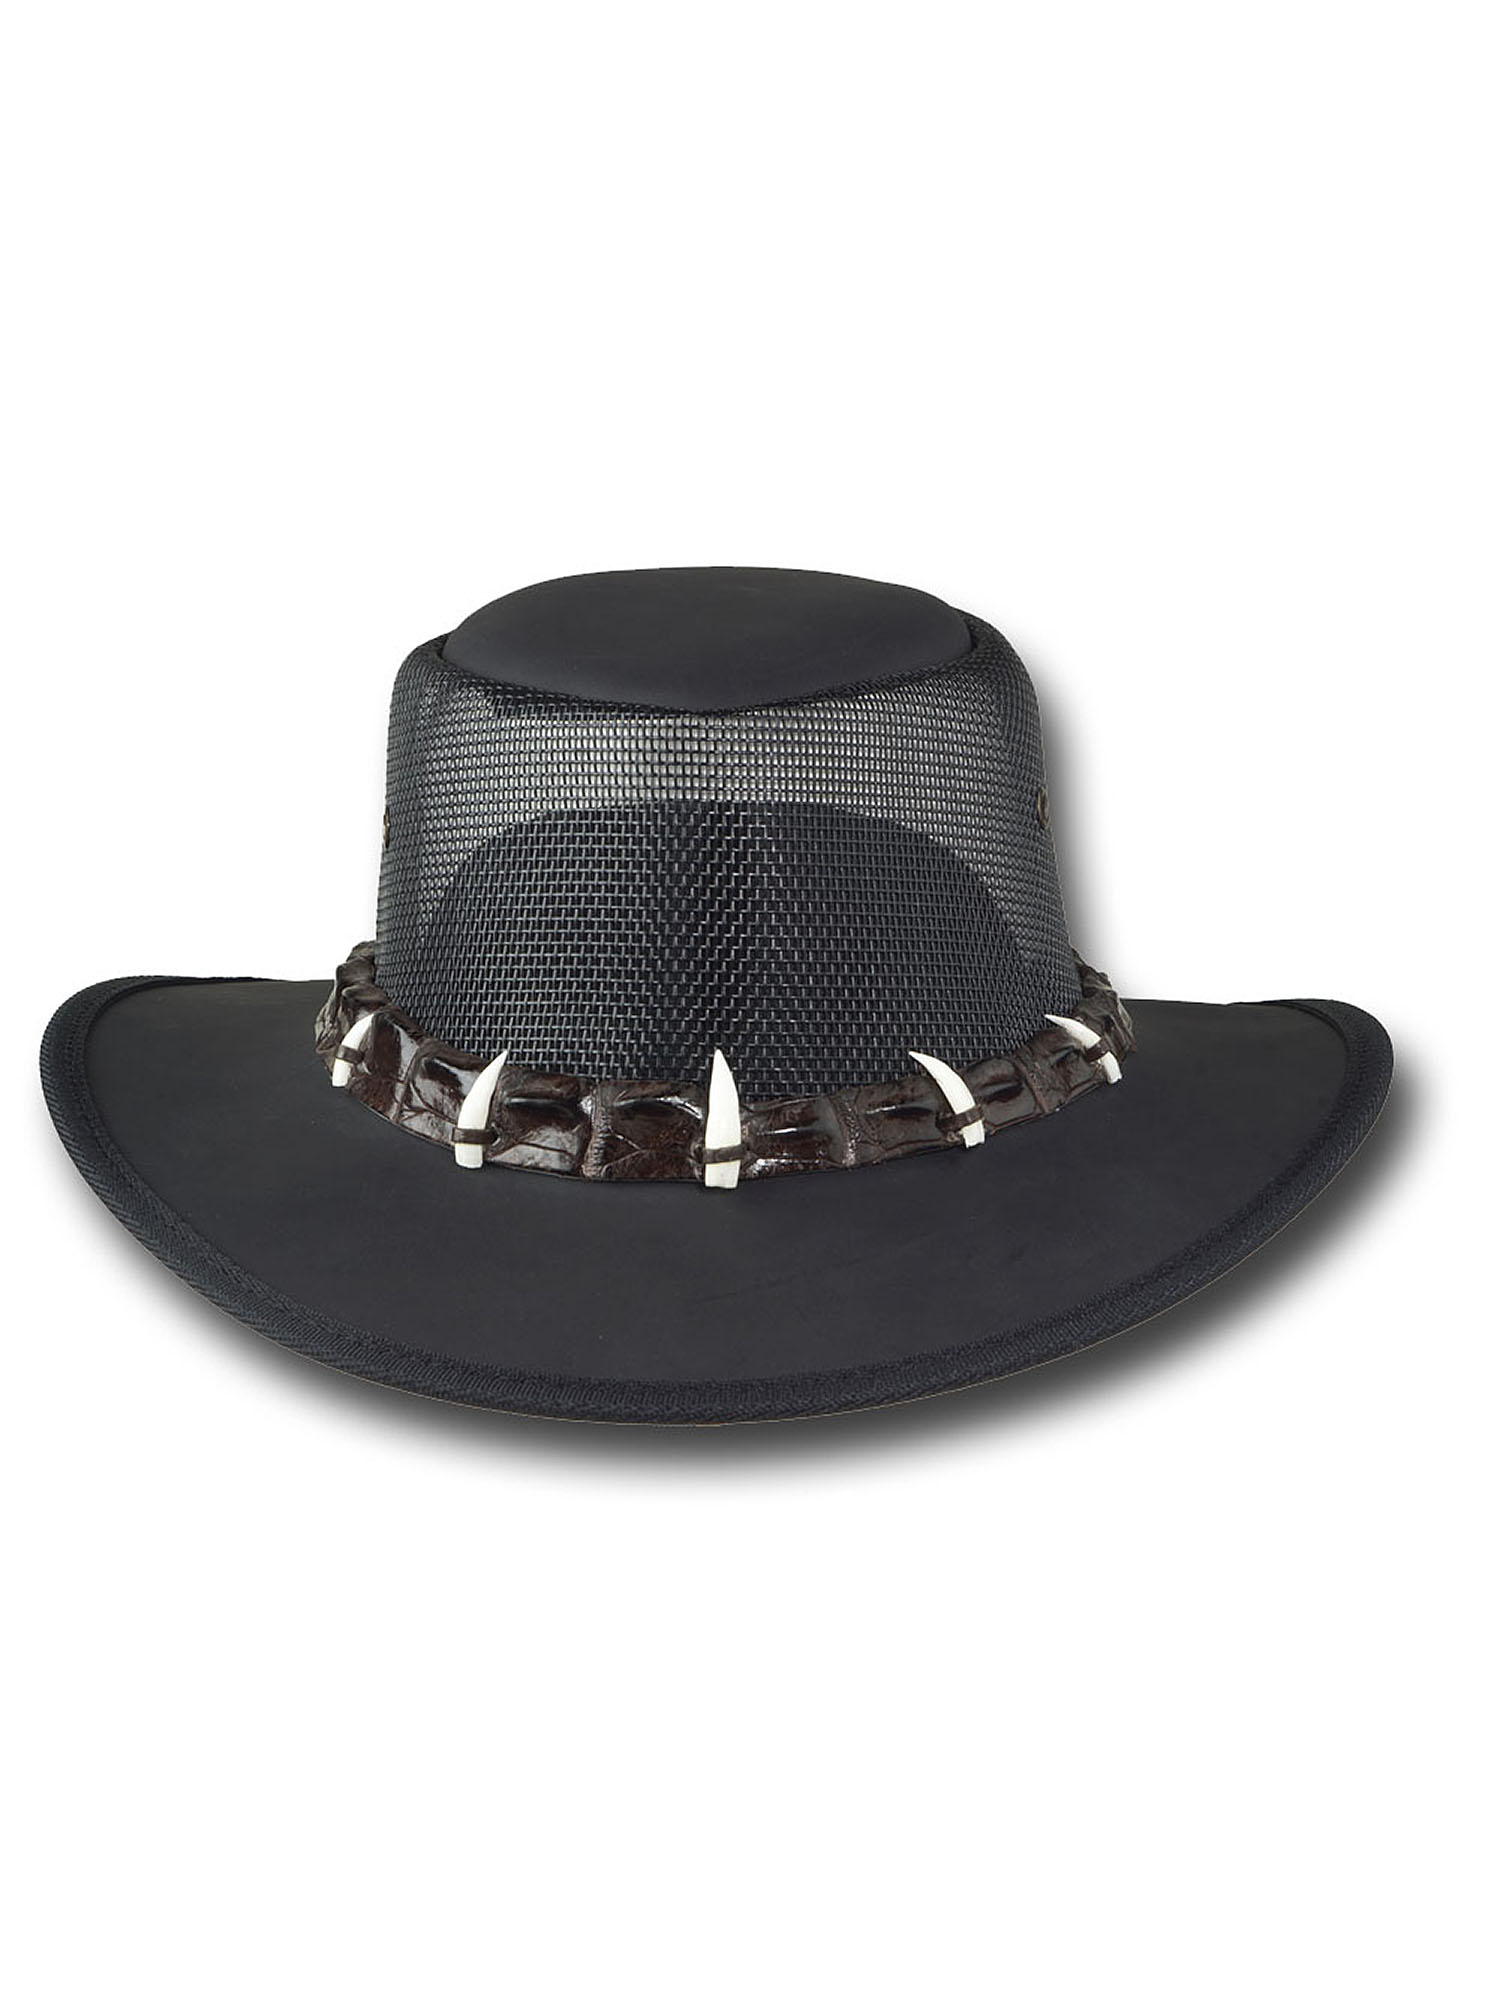 Barmah Hats Outback Crocodile Cooler Leather Hat - Item 1033